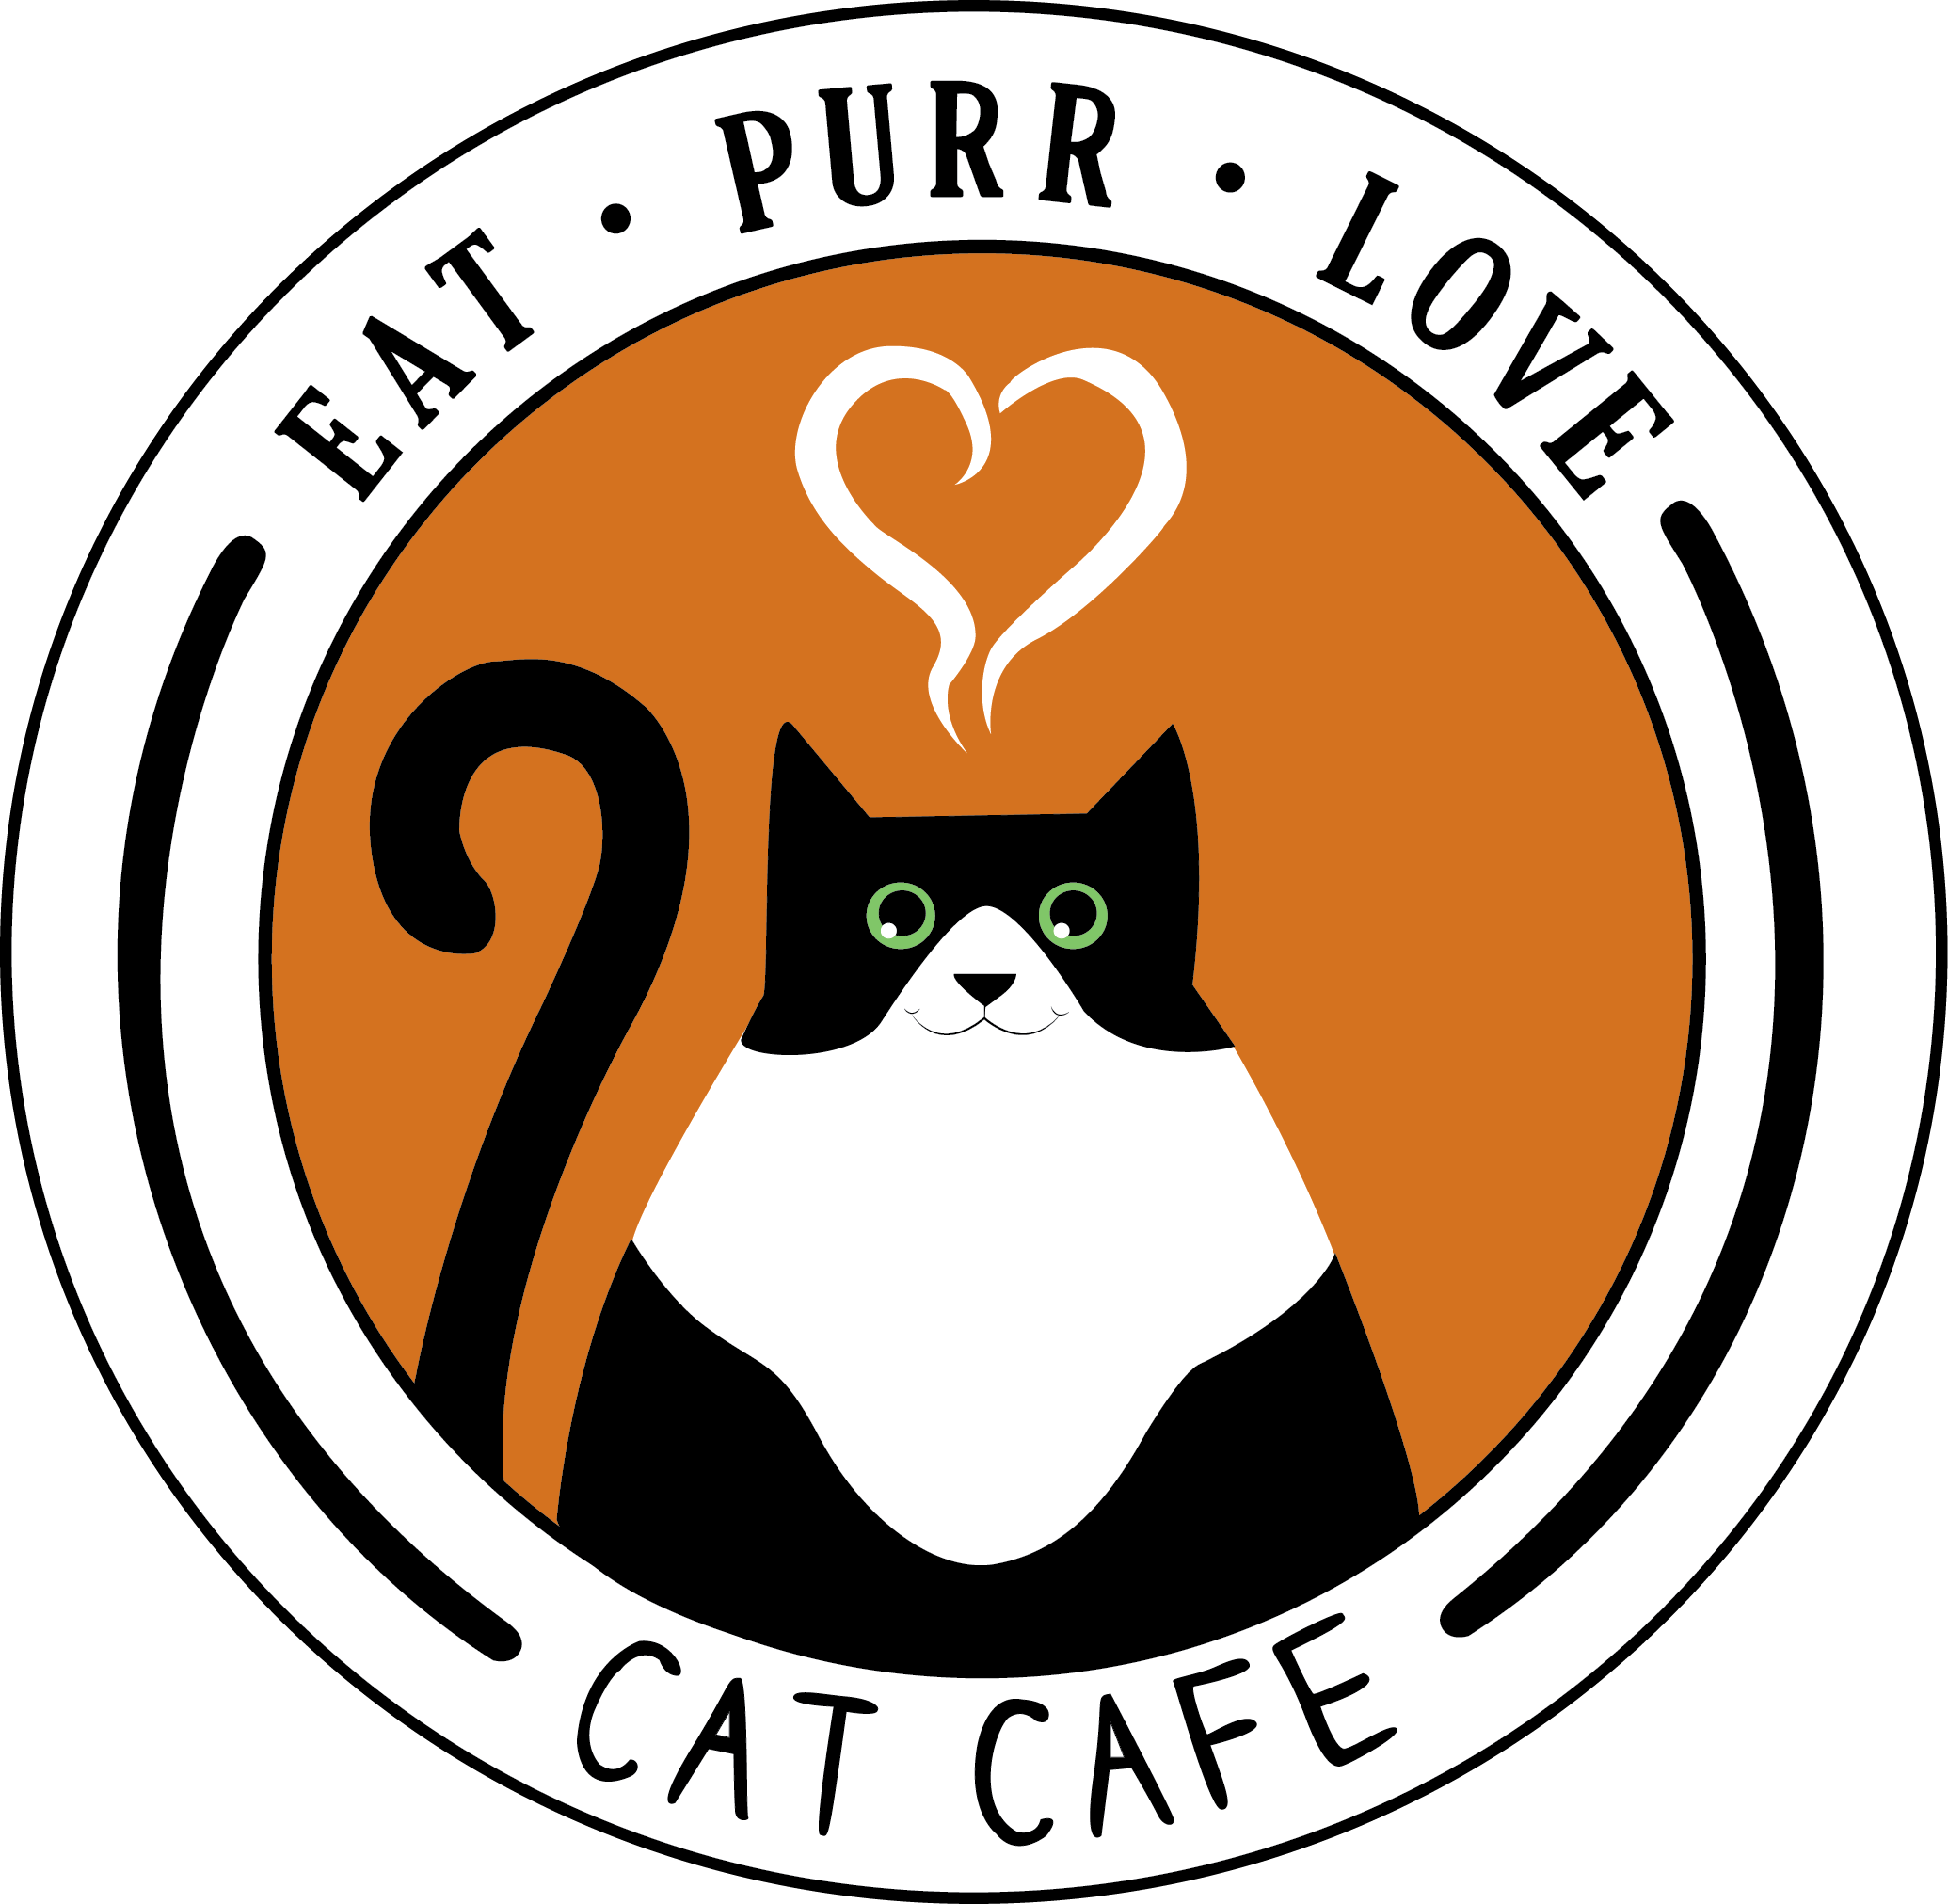 Cat drinking coffee clipart graphic stock Eat Purr Love Cat Café - Central Ohio's first cat cafe graphic stock